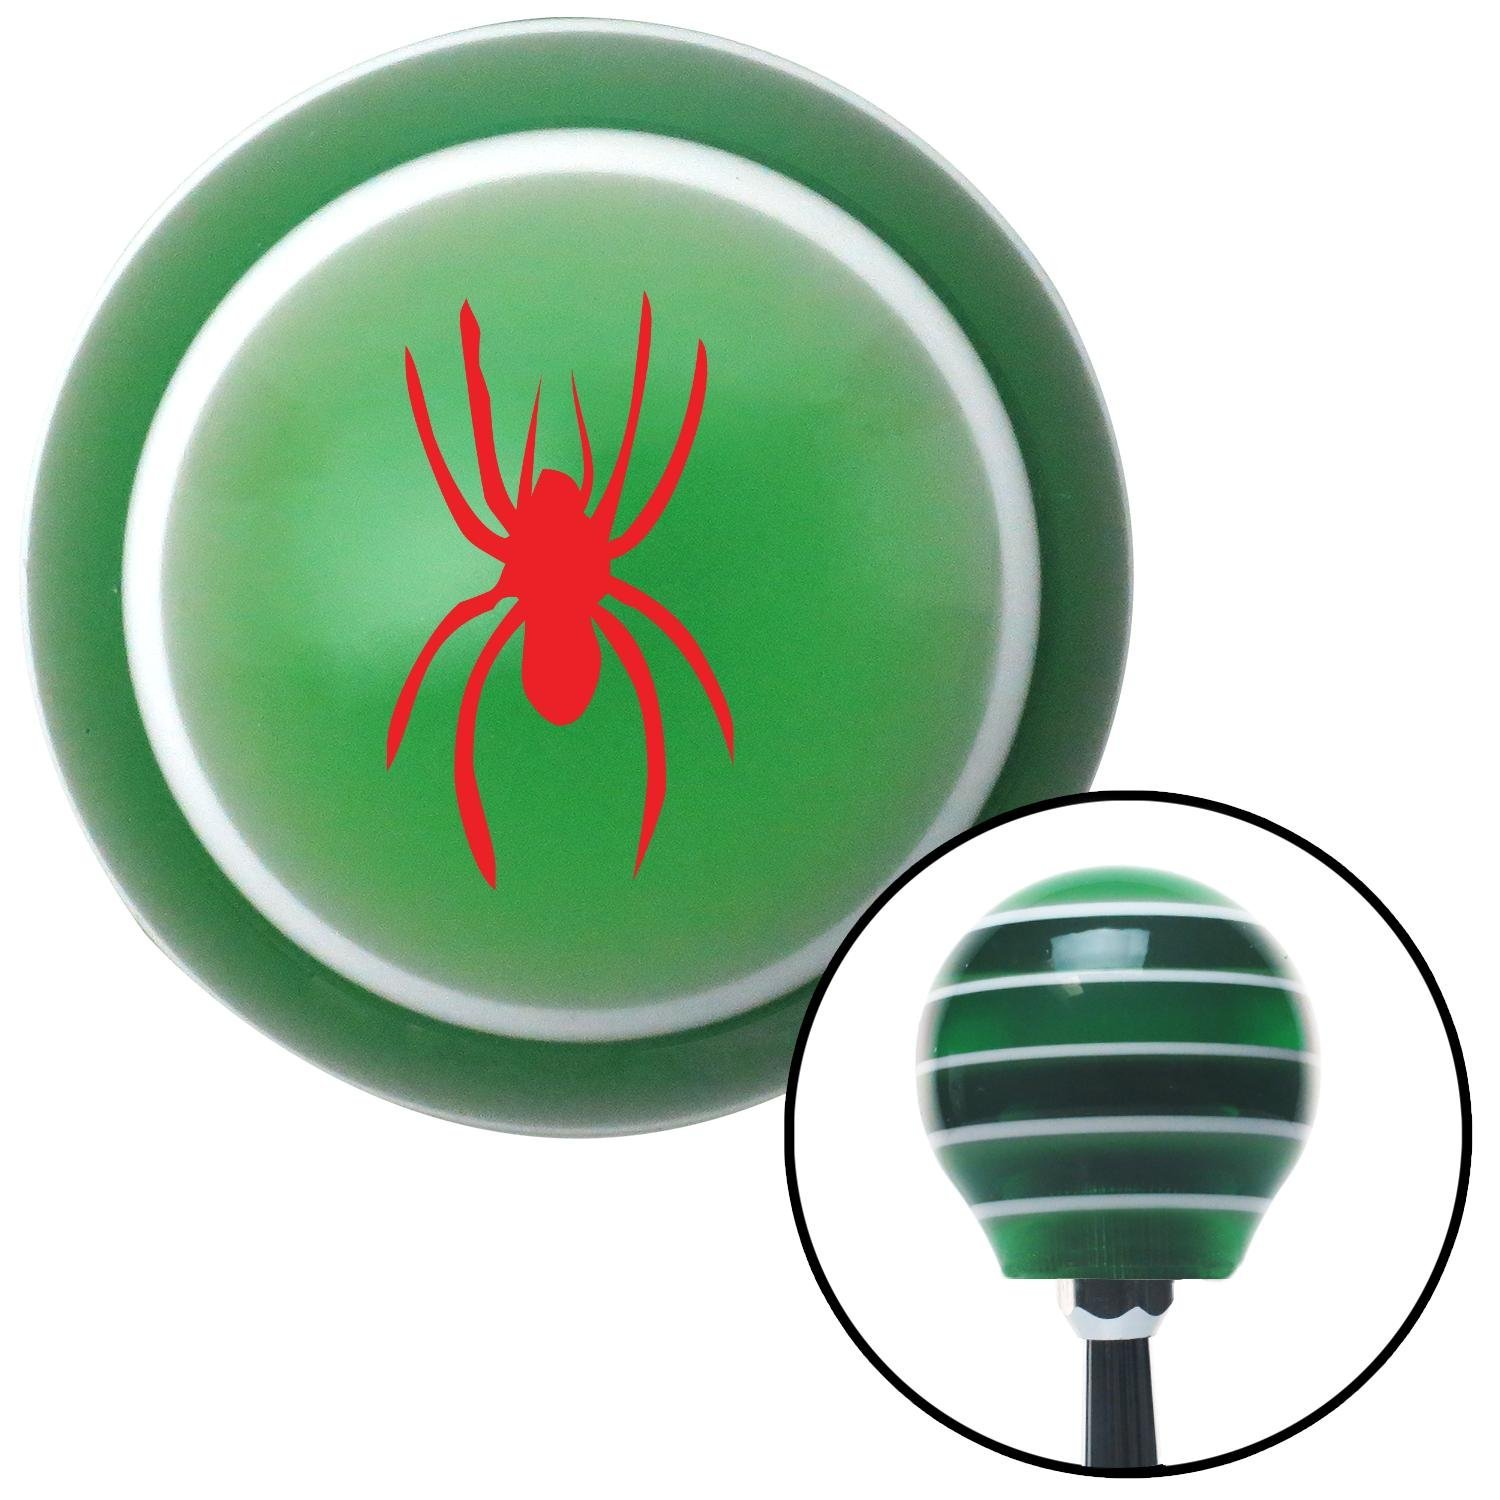 American Shifter 121164 Green Stripe Shift Knob with M16 x 1.5 Insert Red Spider Image